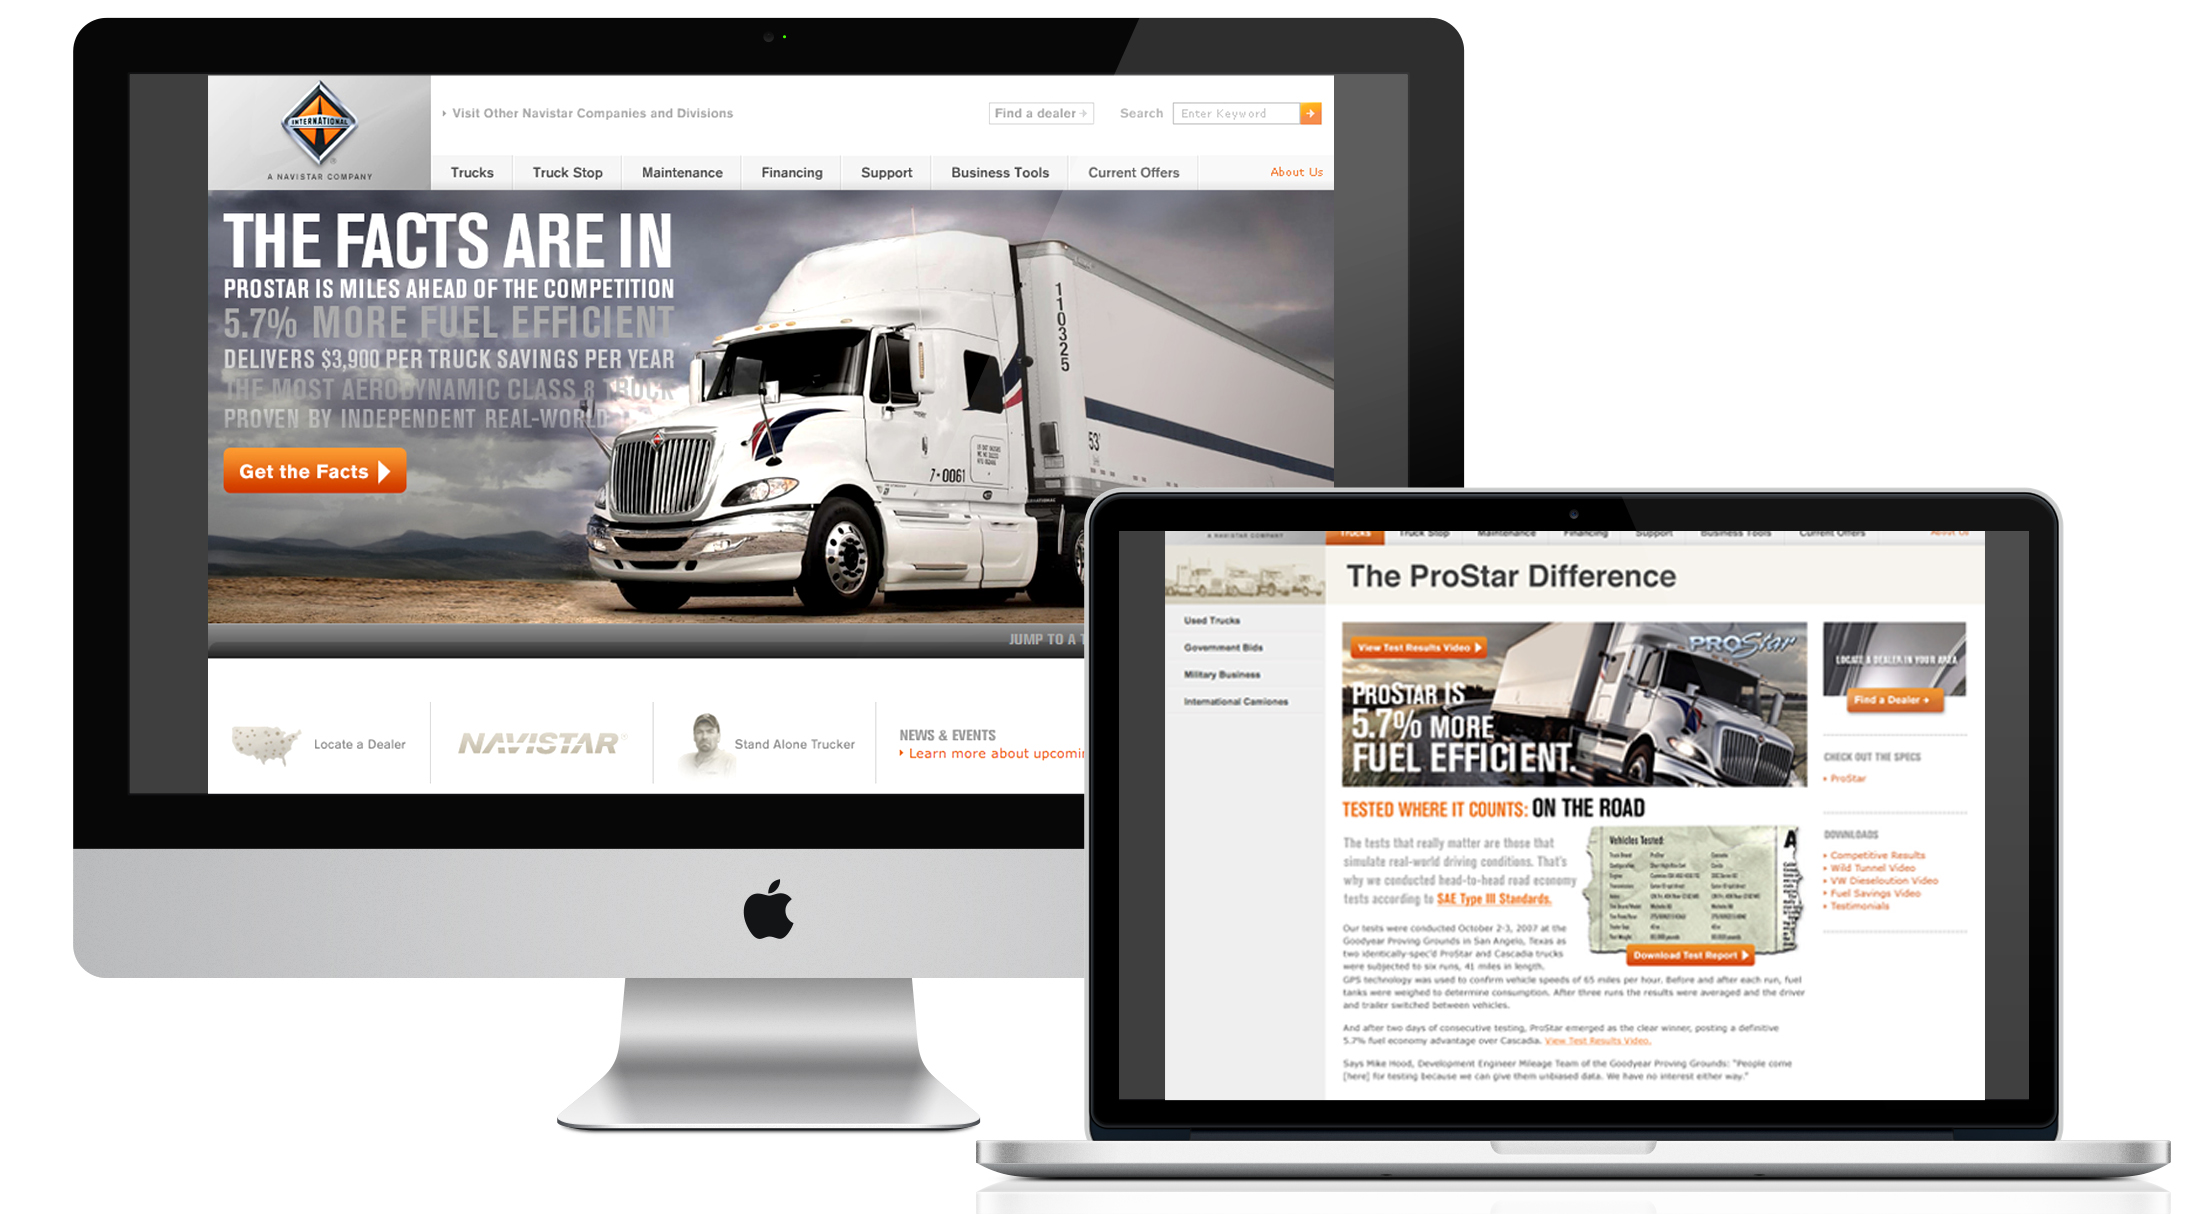 Microsite for the new ProStar, the most aerodynamic, fuel efficient long-haul truck available. Interactive features developed to show impact.